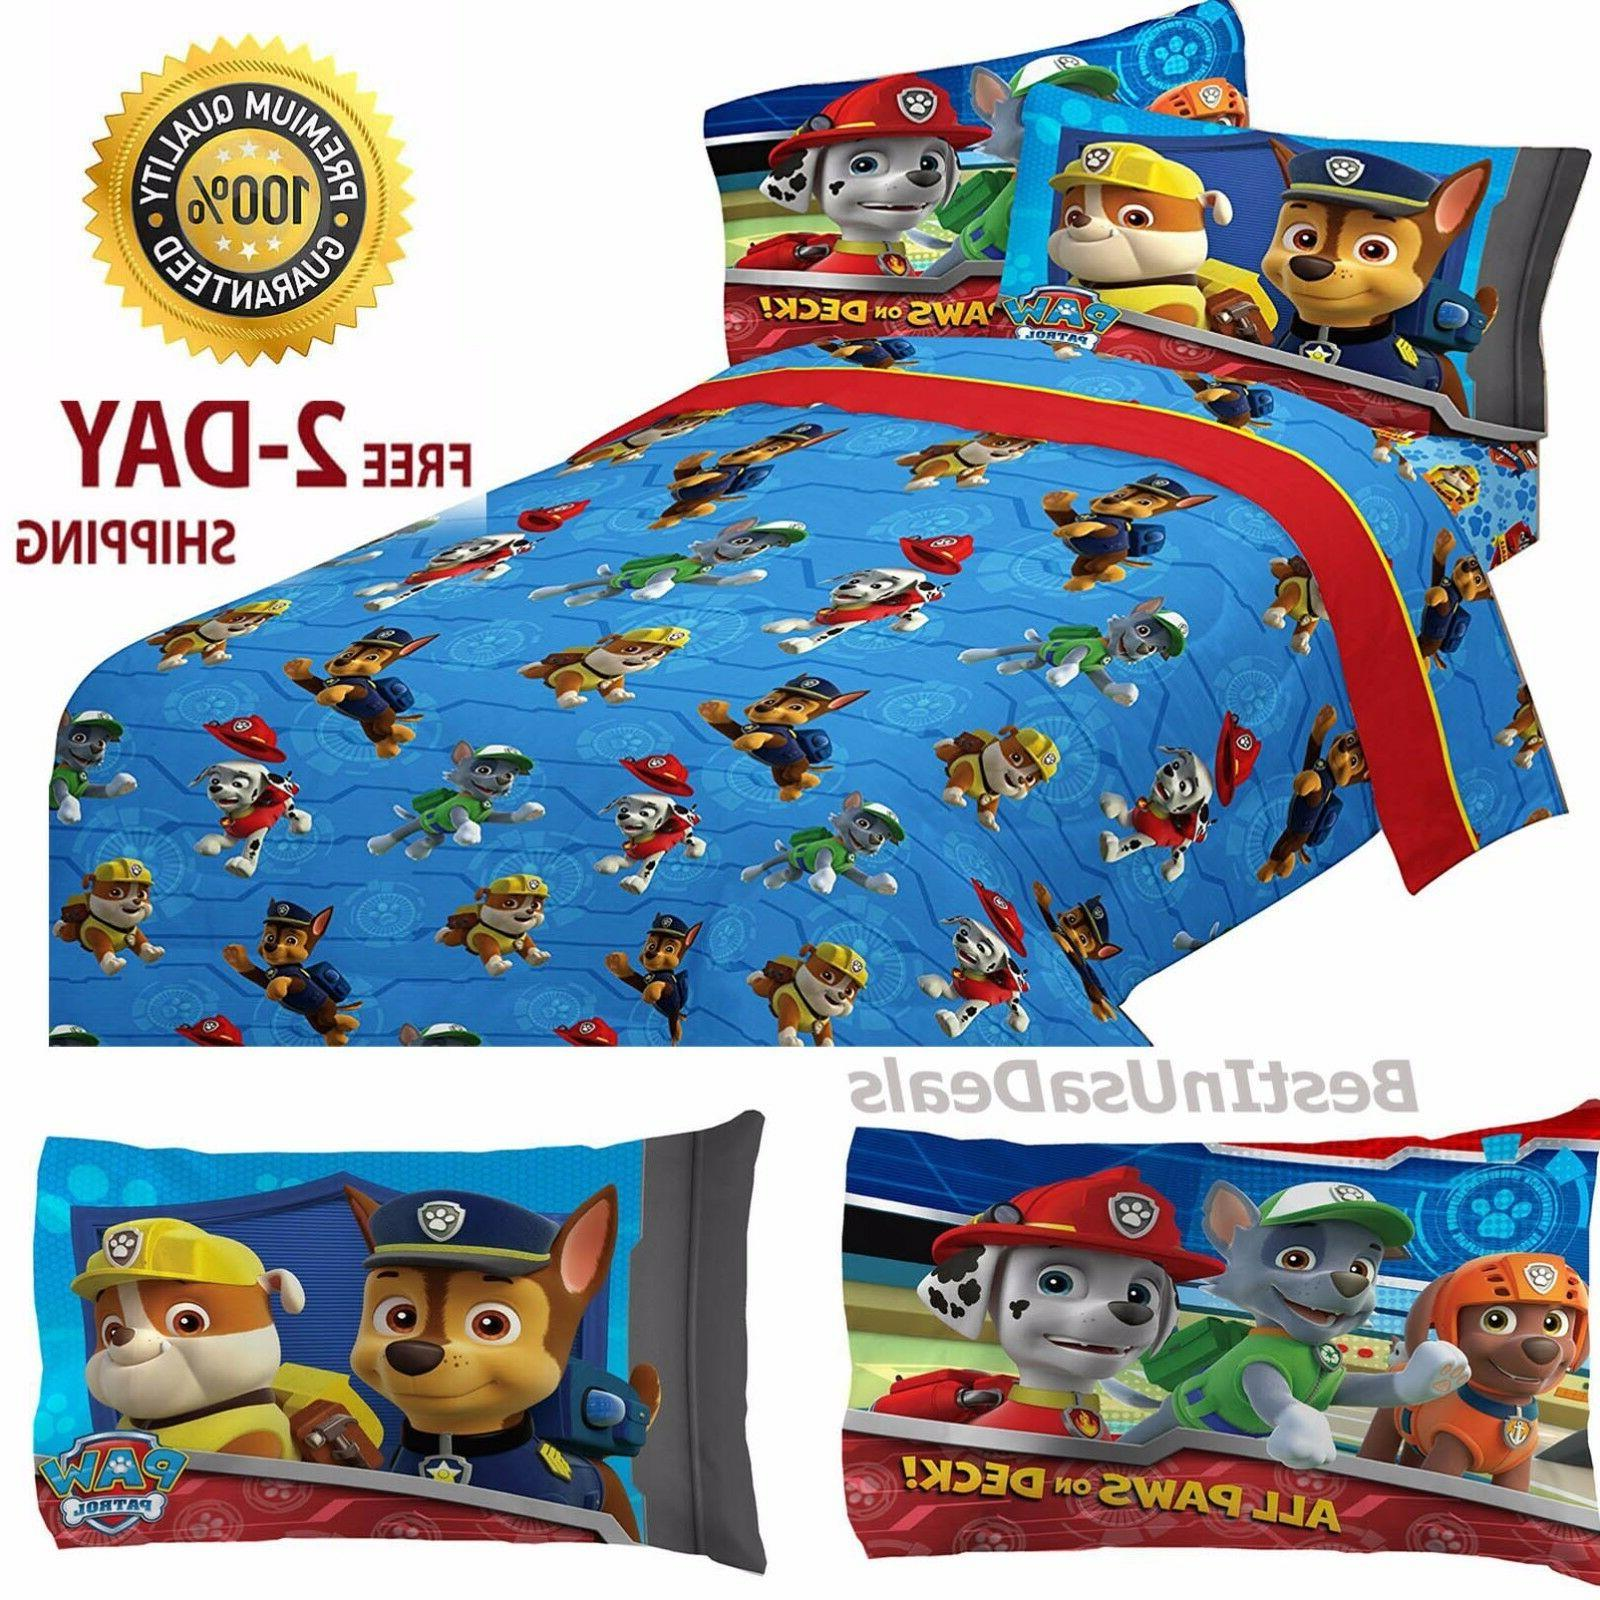 Toddler Bed Sheets Boys Paw Patrol Rescue with Set